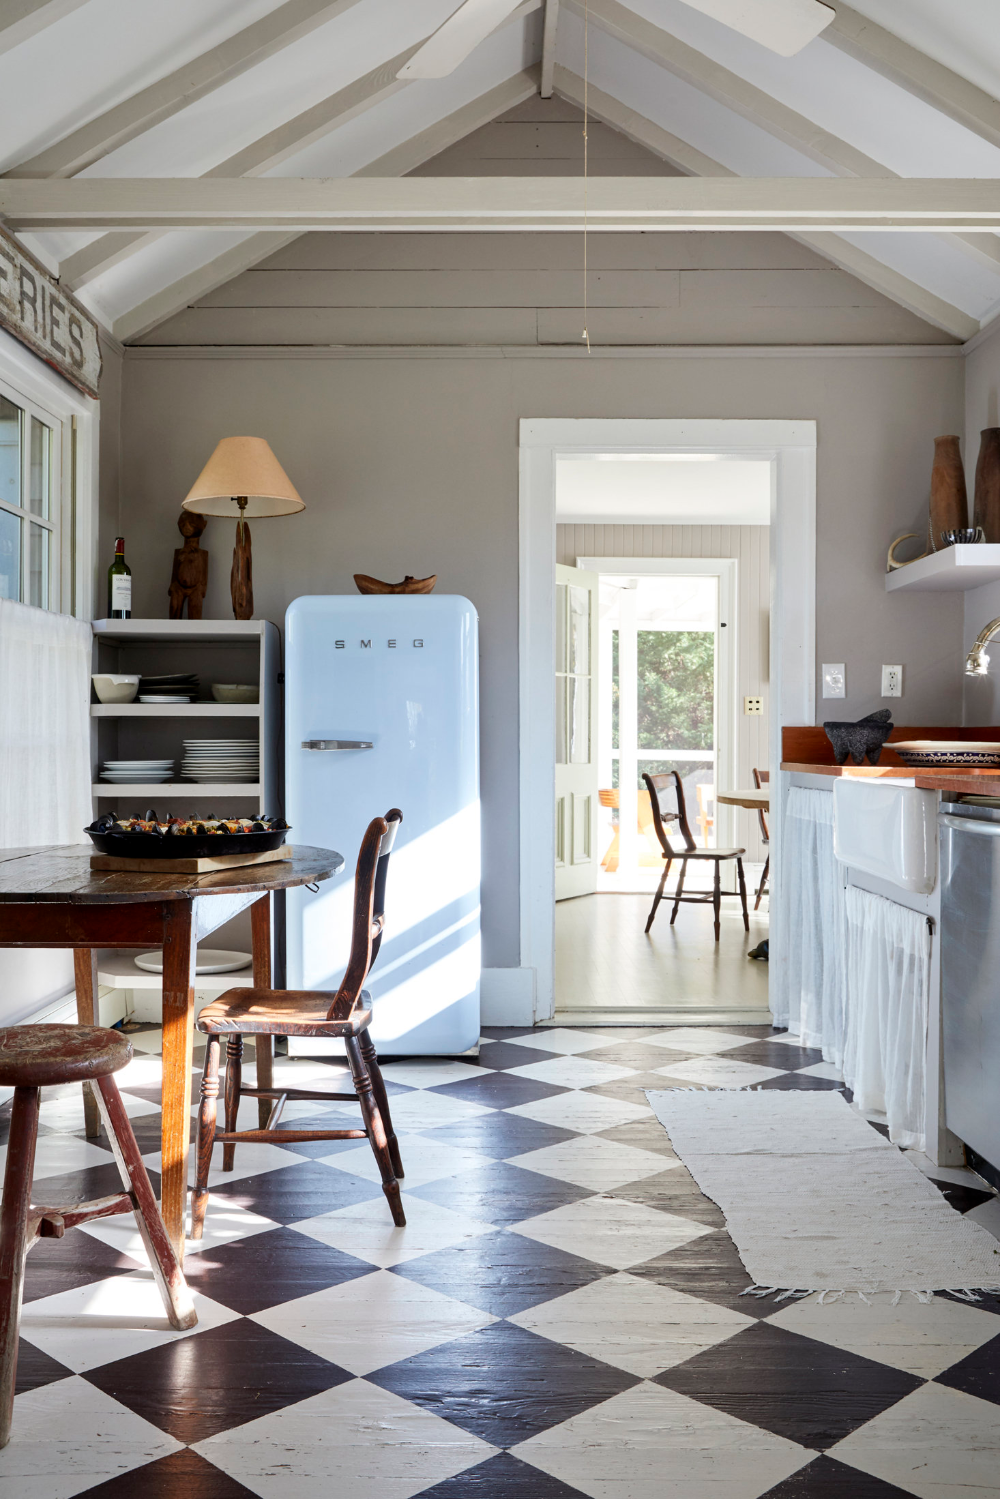 Steal This Look An Antique Dealer's DIY Kitchen, Painted ...